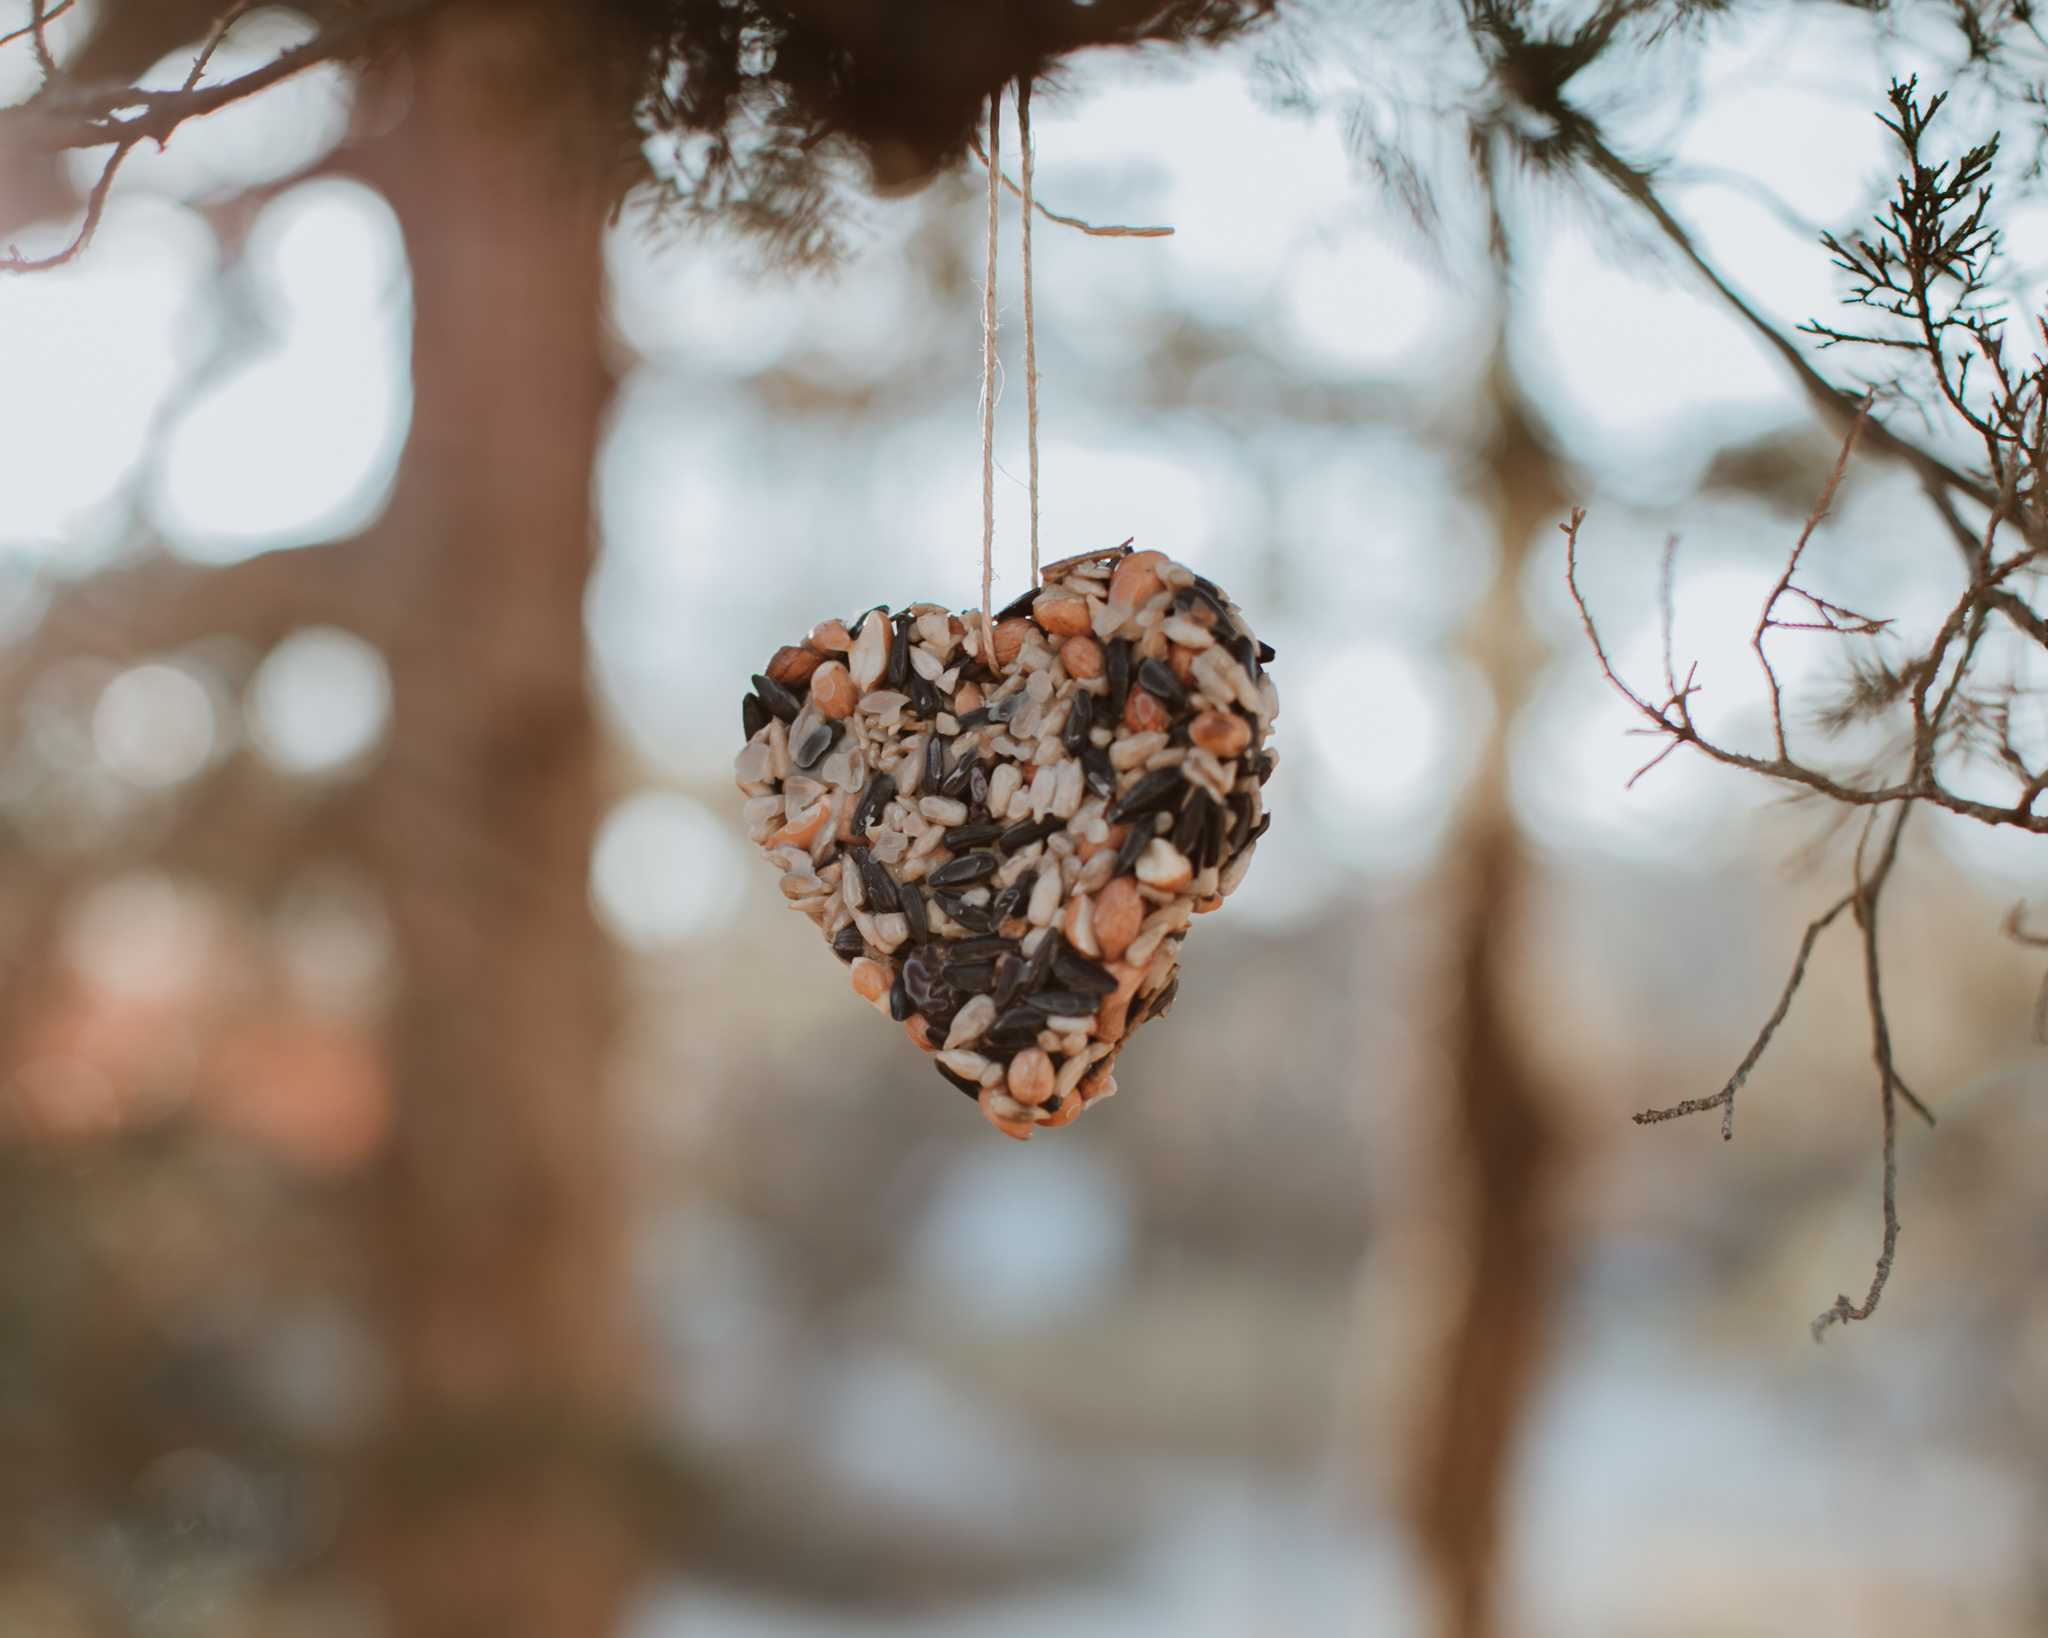 A bird seed ornament in the shape of a heart hanging on a tree.